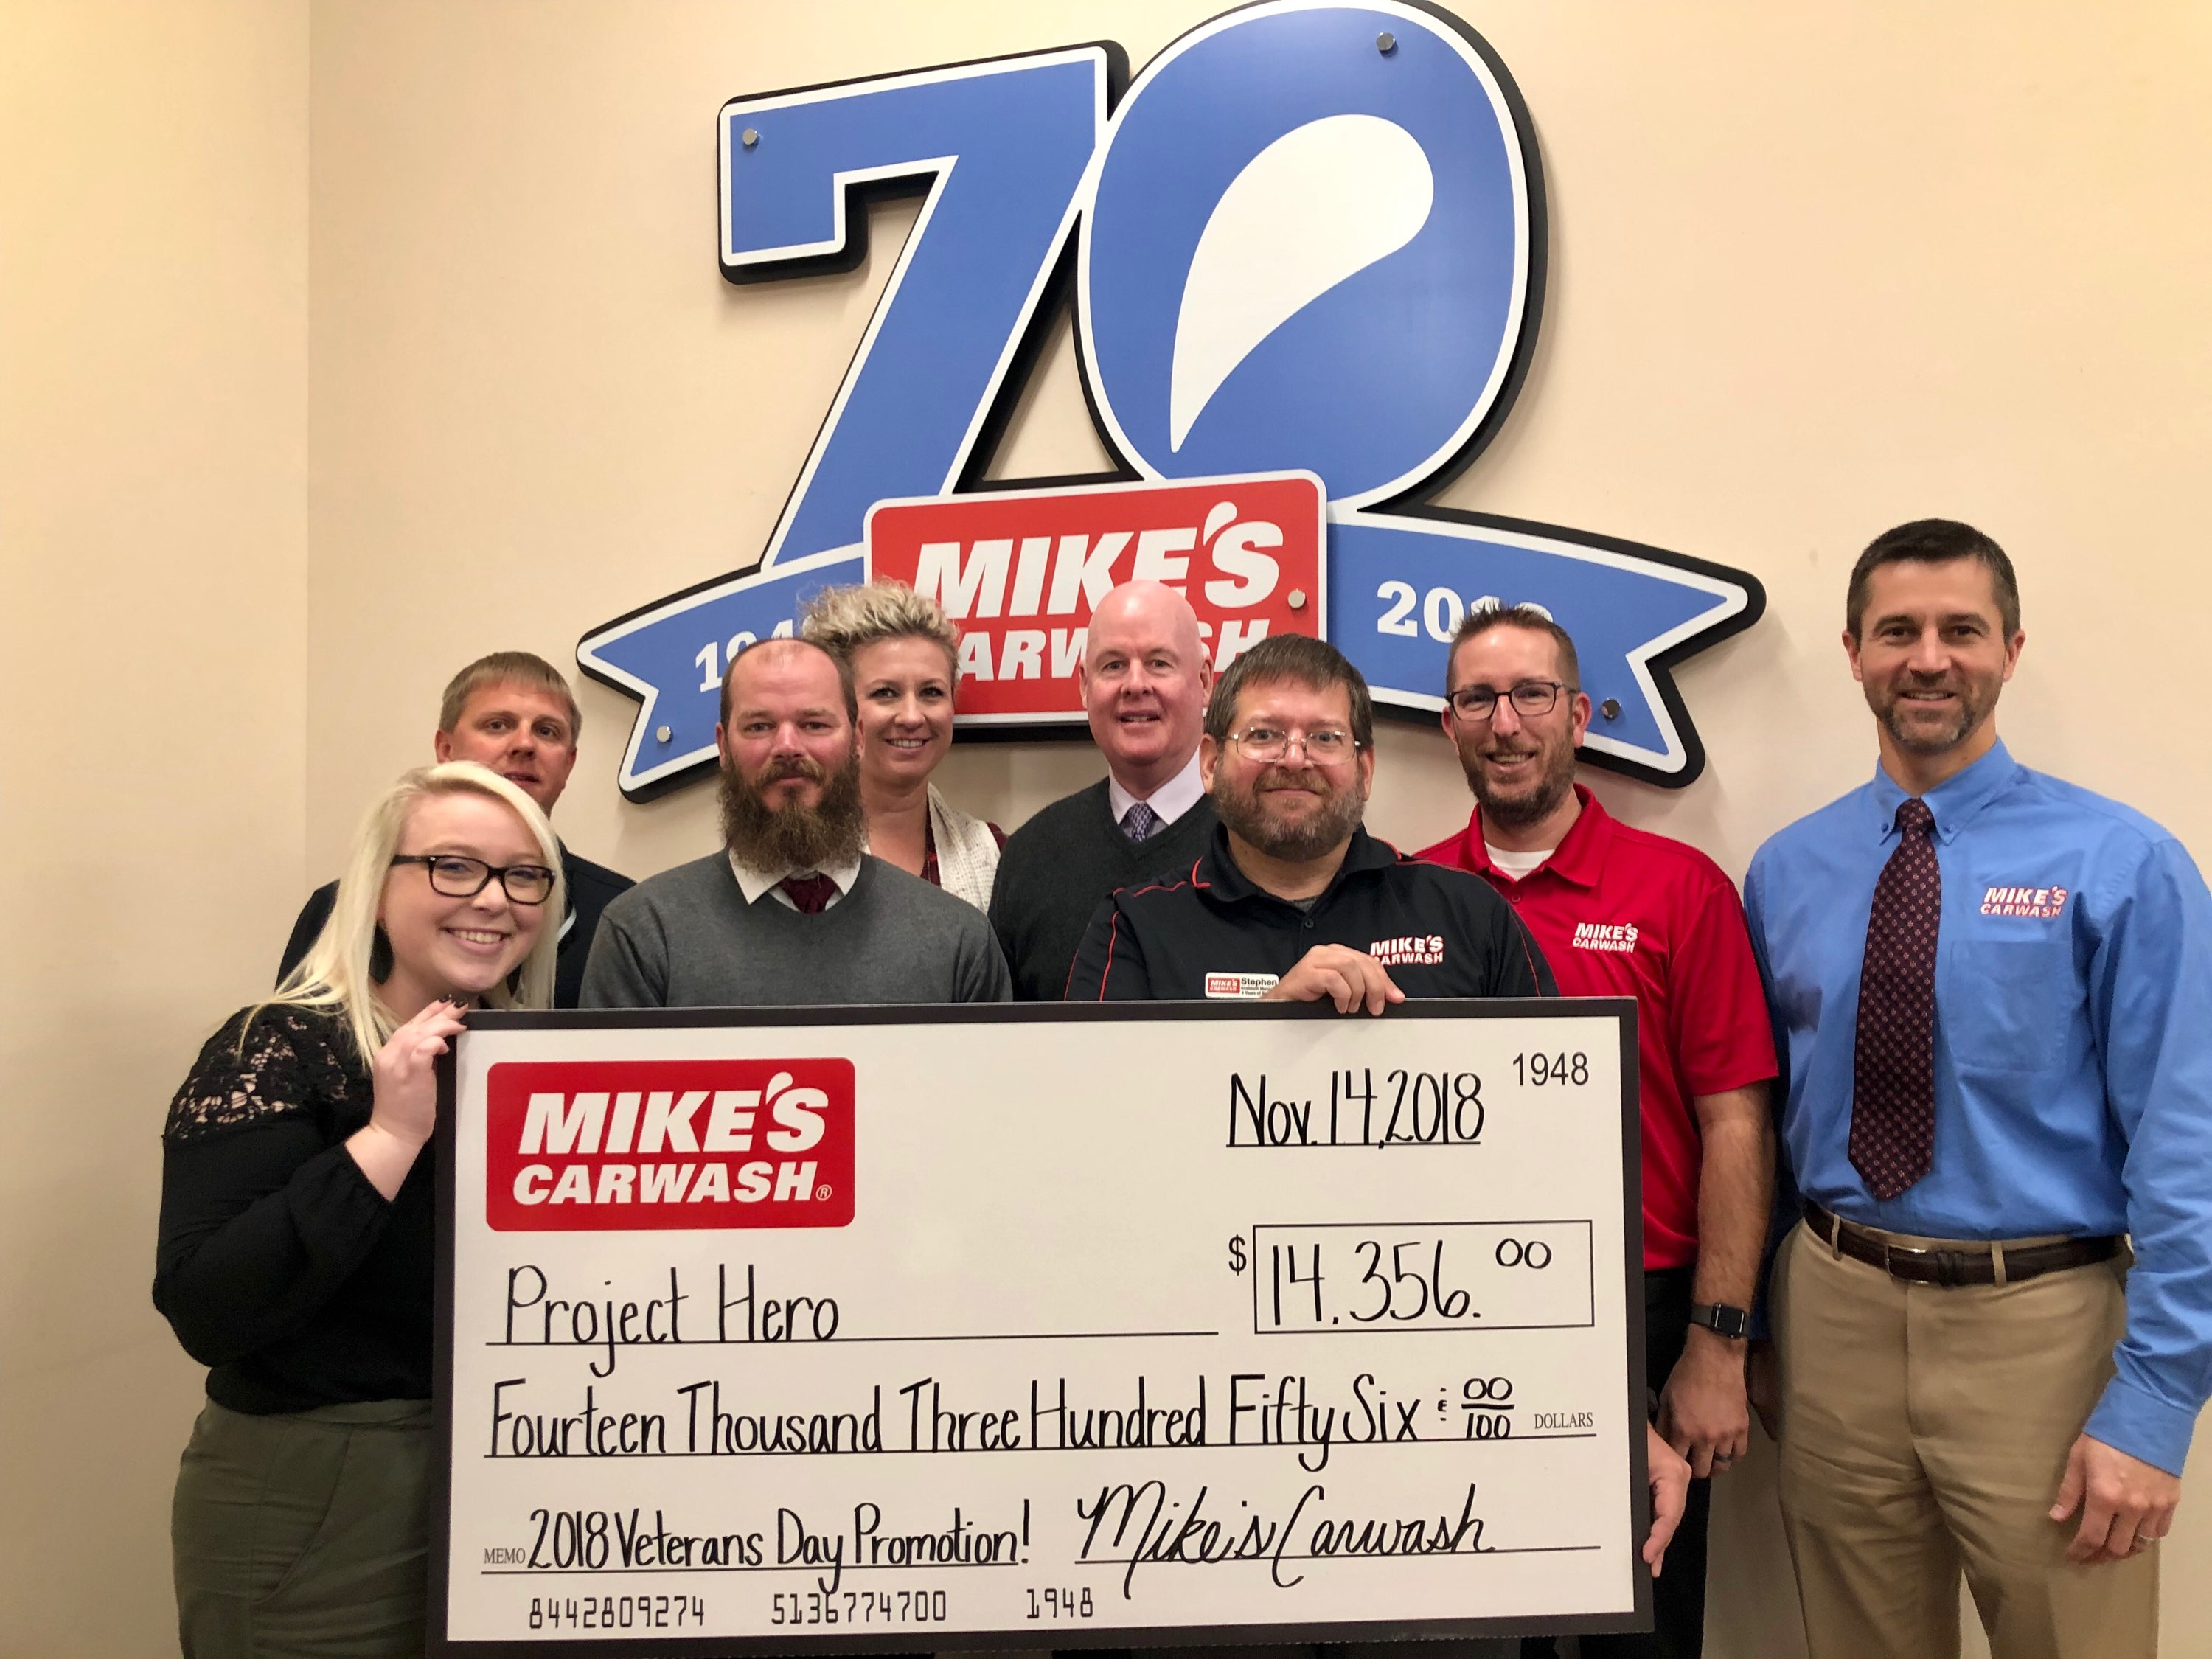 Mike's Carwash Raises $14K for Project Hero